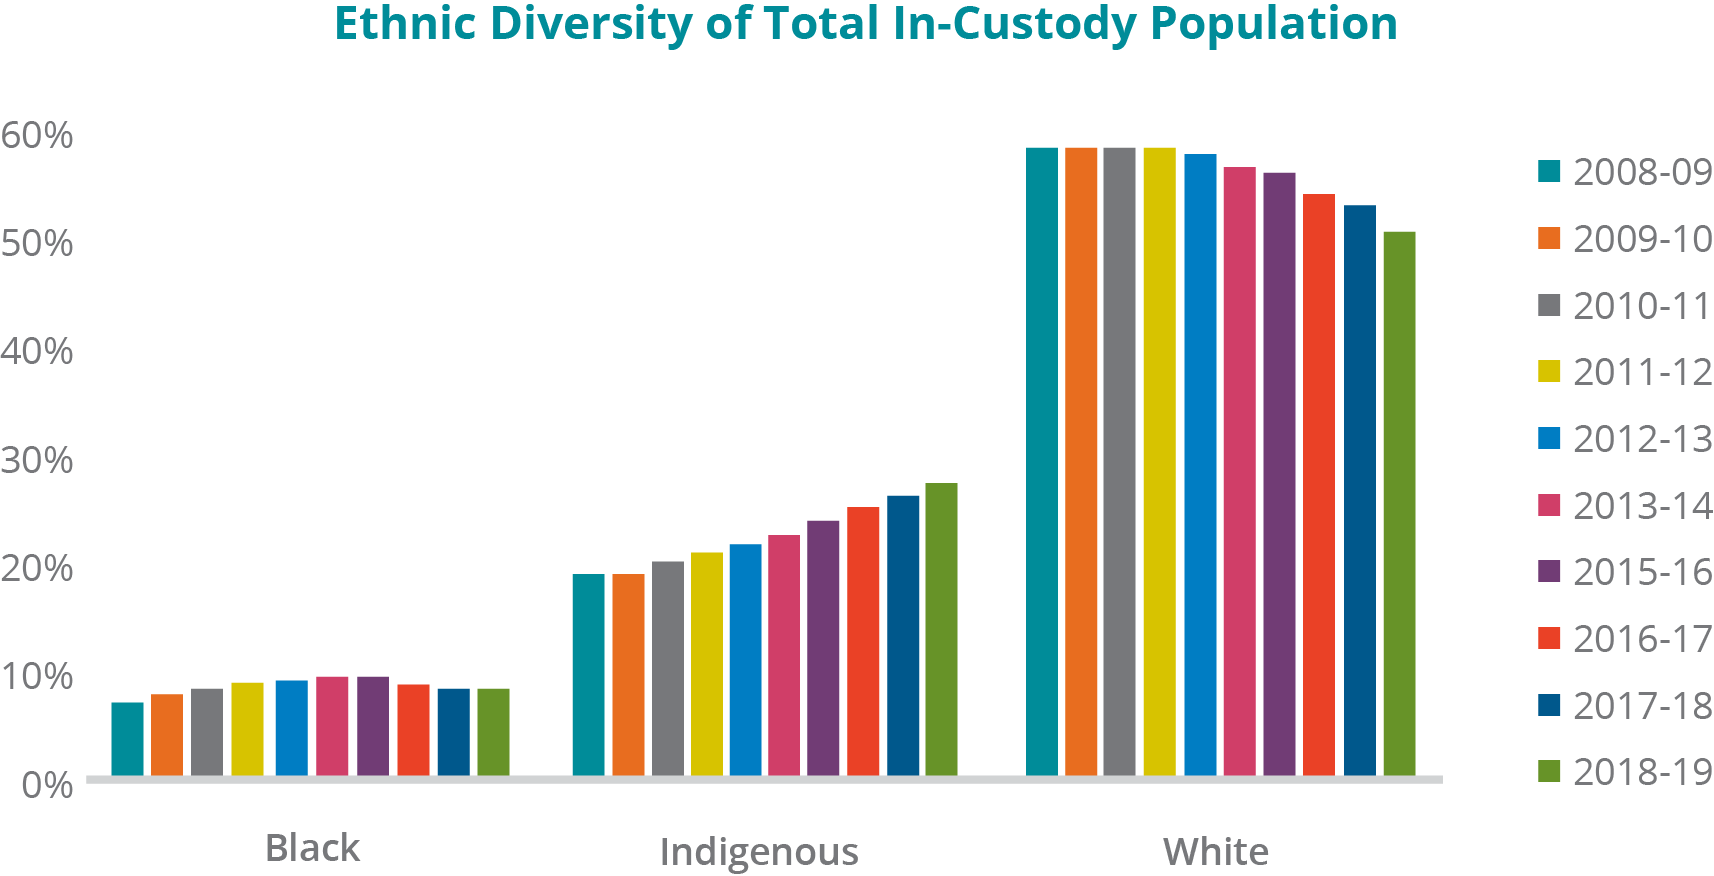 A graph depicting the ethnic diversity of total in-custody population from the fiscal years 2008-09 to 2018-19 -	Black inmates: In 2008-09, 7.14%; 2009-10, 7.81%; 2010-11, 8.29%; 2011-12, 8.99%; 2012-13, 9.13%; 2013-14, 9.57%; 2015-16, 9.73%; 2016-17, 8.97%; 2017-18, 8.58%; and 2018-19, 8.37%. -	Indigenous inmates: In 2008-09, 19.41%; 2009-10, 19.58%; 2010-11, 20.54%; 2011-12, 21.52%; 2012-13, 22.31%; 2013-14, 23.07%; 2015-16, 24.57%; 2016-17, 25.71%; 2017-18, 26.82%; and 2018-19, 27.80%. -	White inmates: In 2008-09, 66.38%; 2009-10, 65.31%; 2010-11, 63.79%; 2011-12, 61.37%; 2012-13, 59.32%; 2013-14, 57.97%; 2015-16, 57.44%; 2016-17, 55.35%; 2017-18, 54.00%; and 2018-19, 51.99%. Note: Data was not available for 2014-15 fiscal year from CSC's Data Warehouse. Other ethnic groups were excluded as their numbers were too small in comparison.